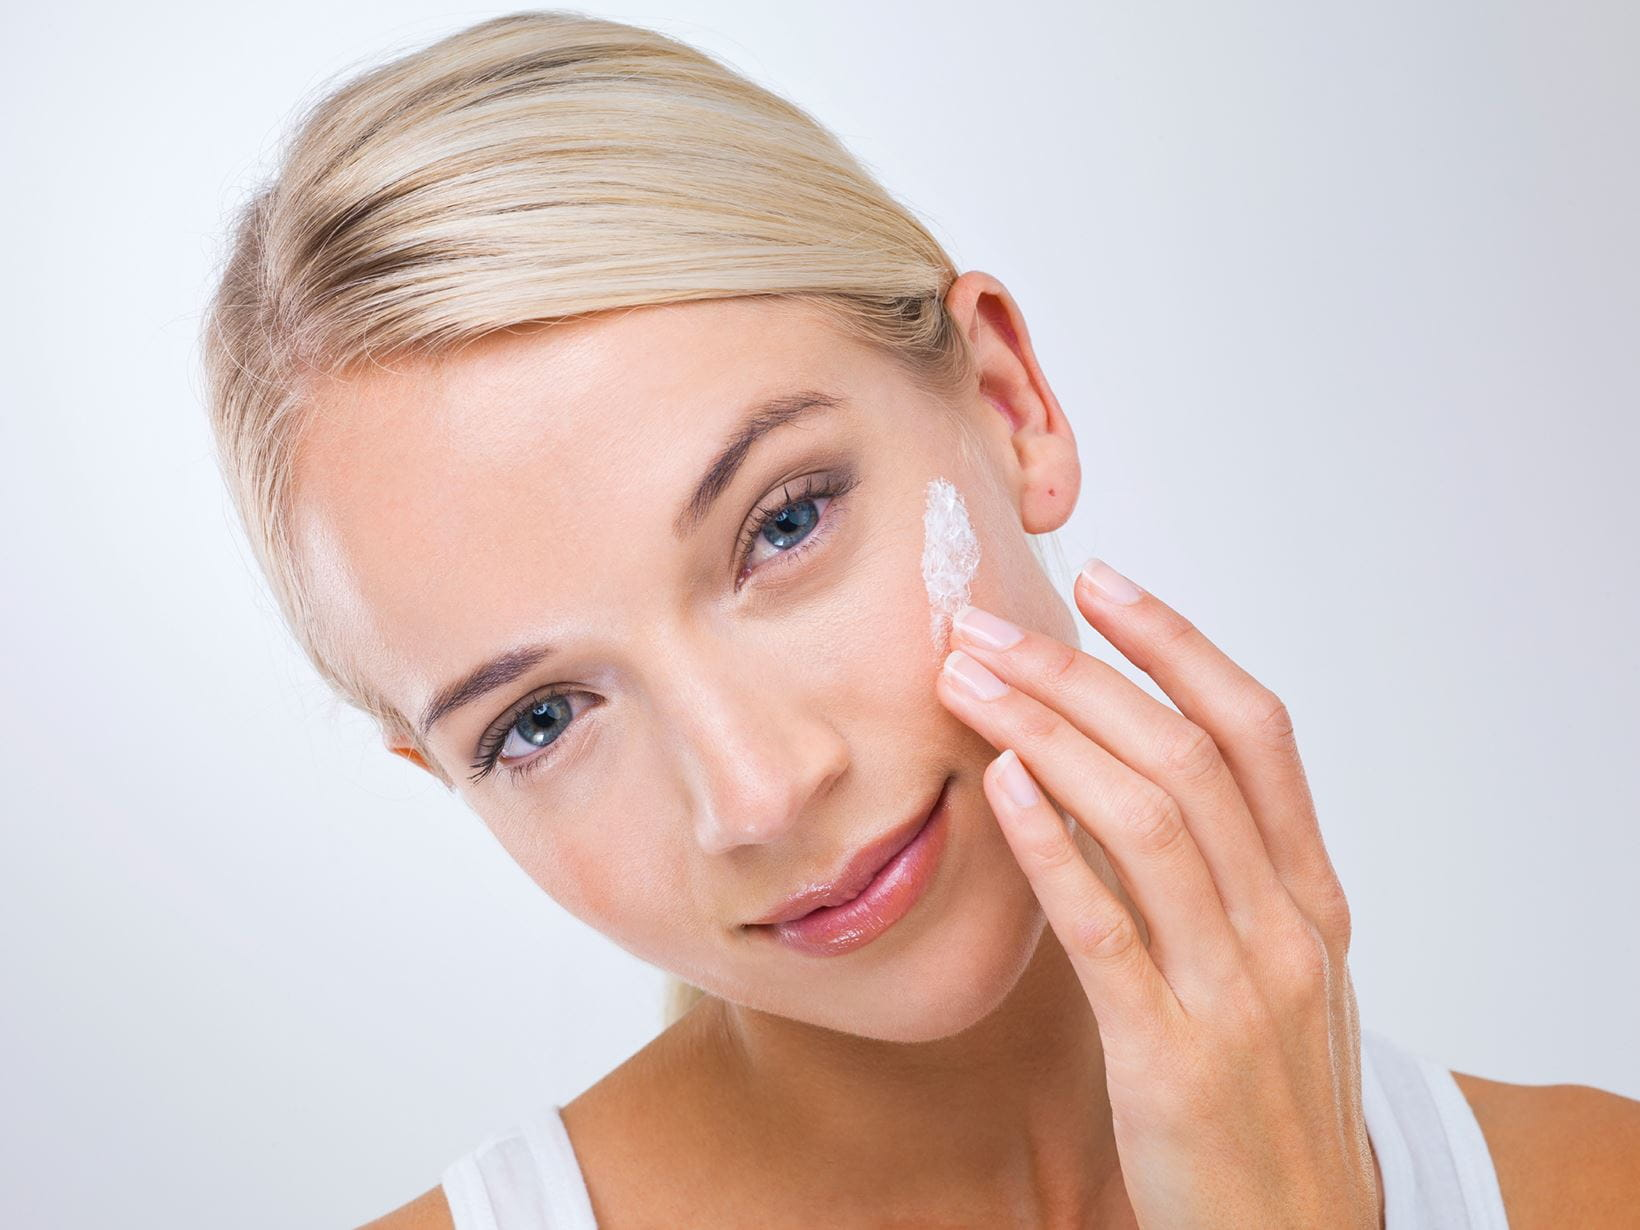 blonde lady applying face cream to soothe facial redness